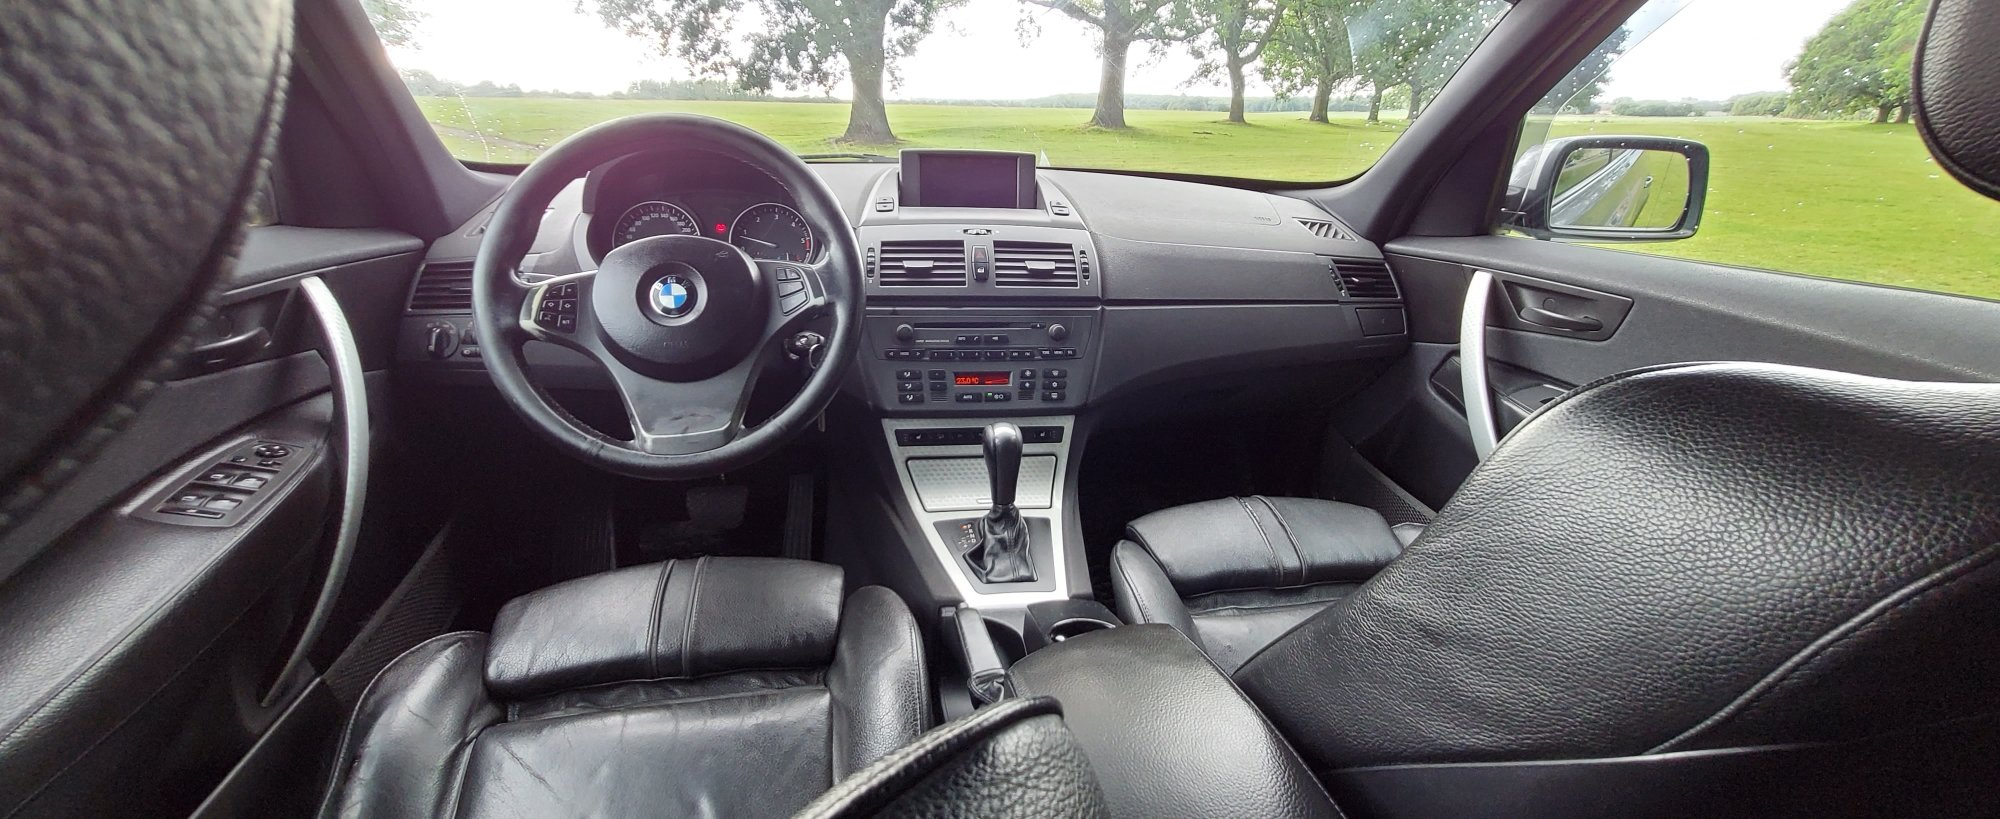 2004 LHD BMW X3, 3.0d Sport 5dr, Auto, Turbo,LEFT HAND DRIVE For Sale (picture 6 of 6)